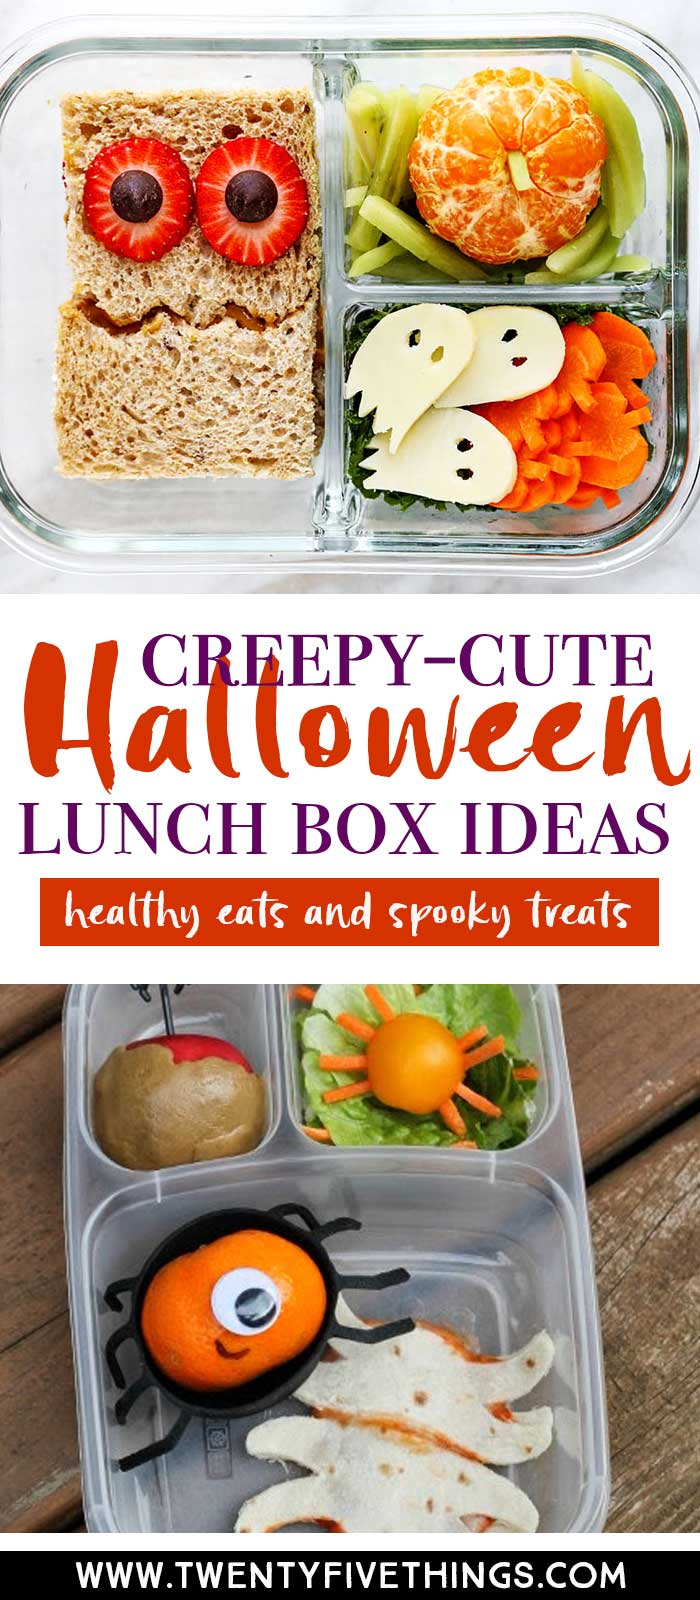 Get a ton of great ideas for your kids Halloween lunchbox to make something really fun that your kids will totally love..